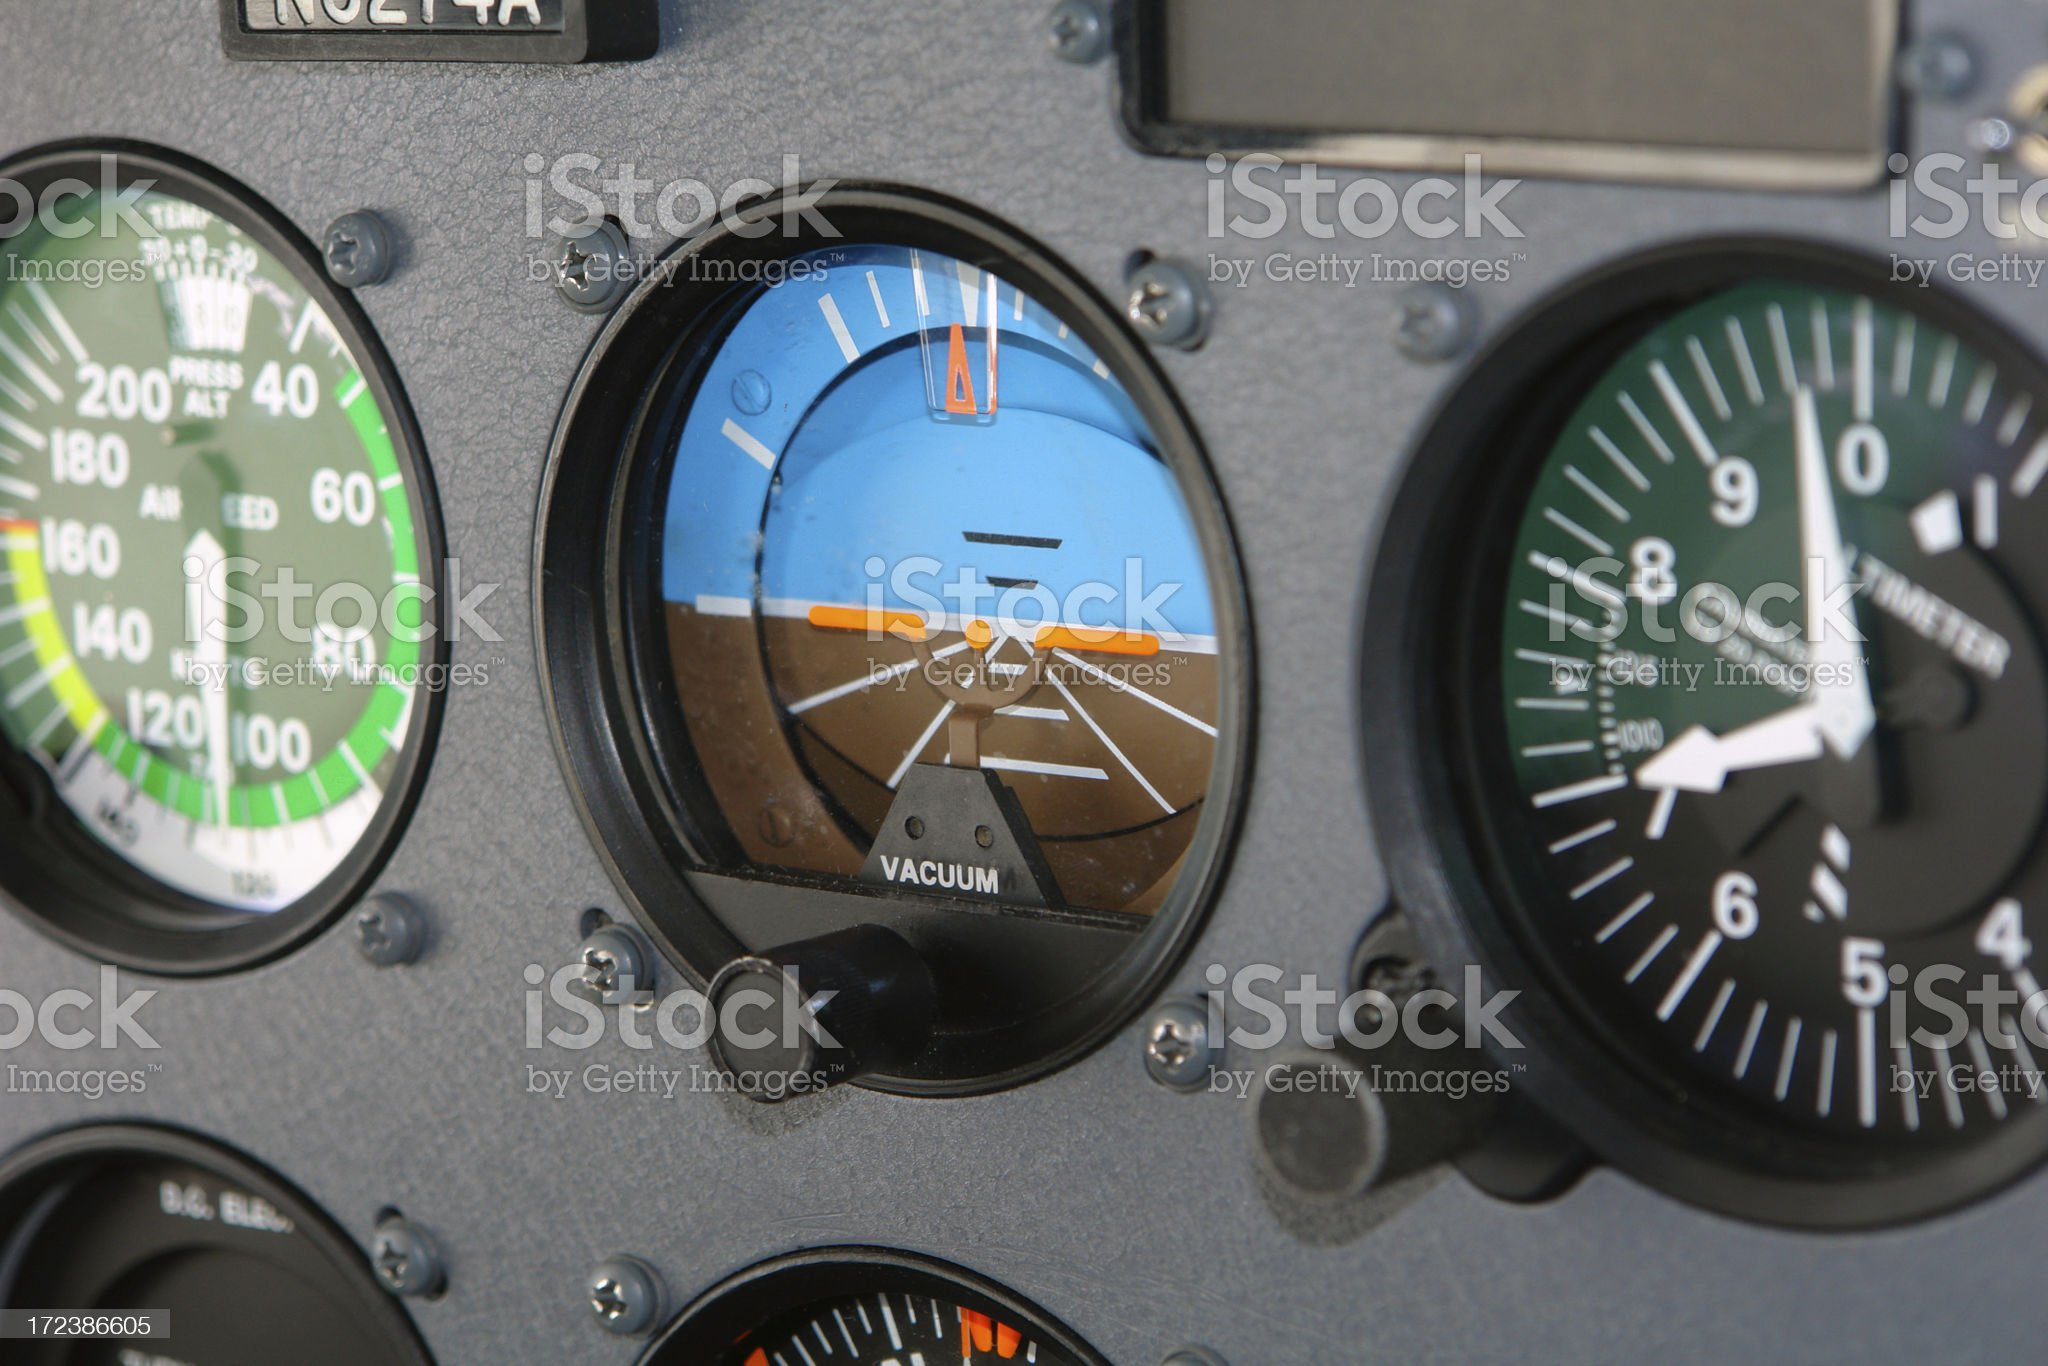 Cessna Cockpit Interior of an Airplane royalty-free stock photo